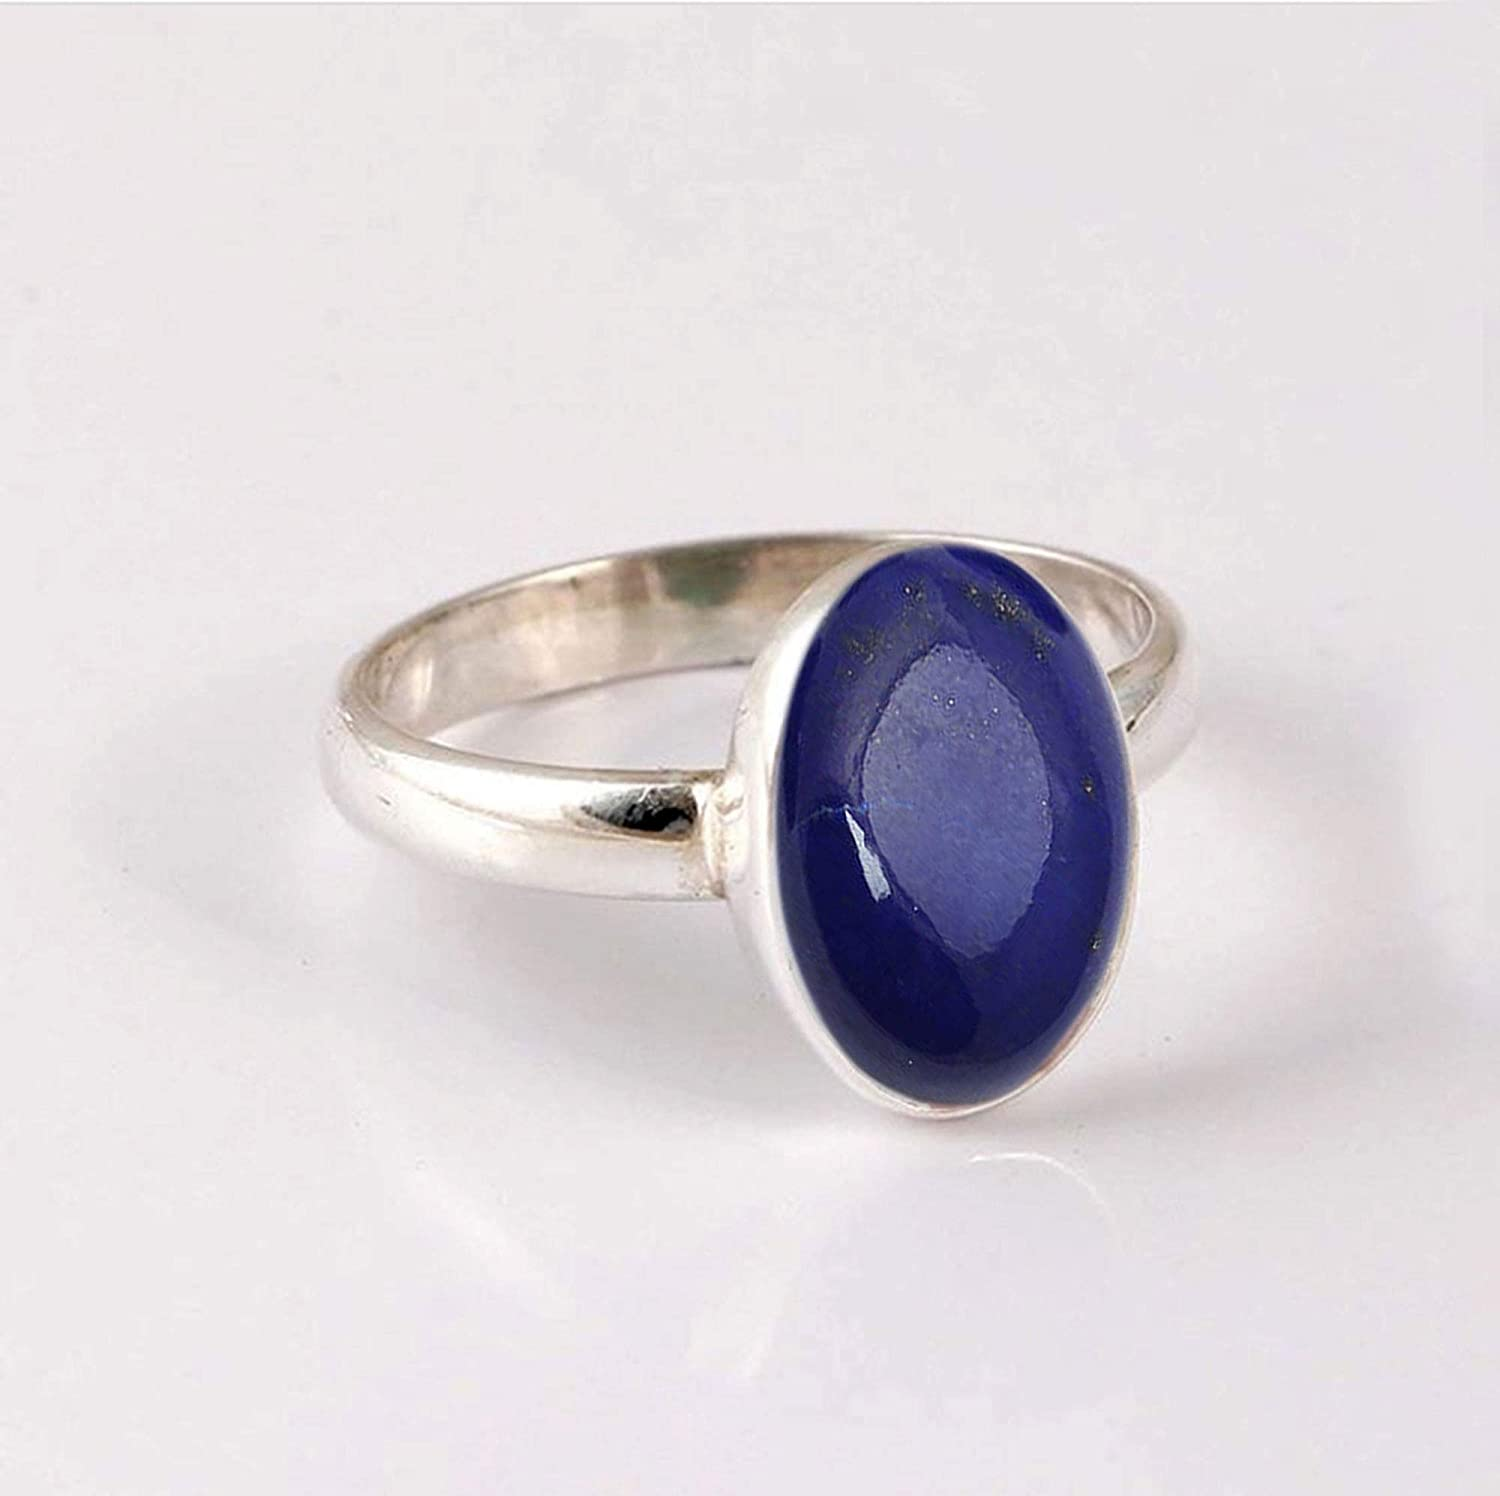 Metaphysical Healing Gemstone Minimalist Gemstone Ring Handmade Ring Womens Dainty Ring Gemstone Jewelry Genuine Deep Blue Afghani Lapis Lazuli Ring Solid 925 Silver Ring Cab Oval Gemstone Ring